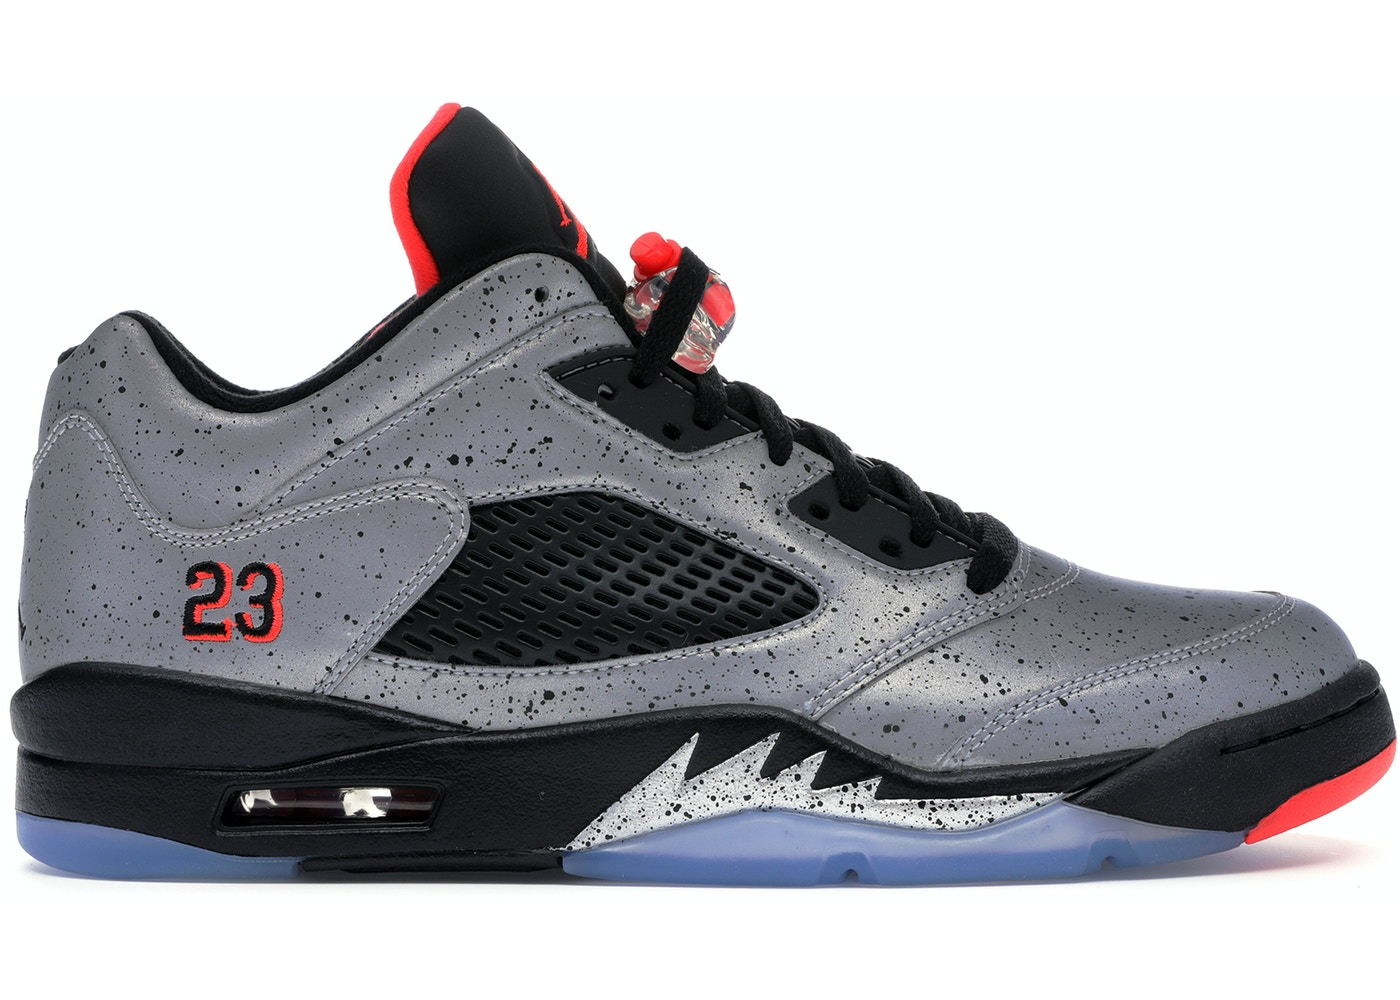 huge selection of a24bf f56ac Jordan 5 Retro Low Neymar